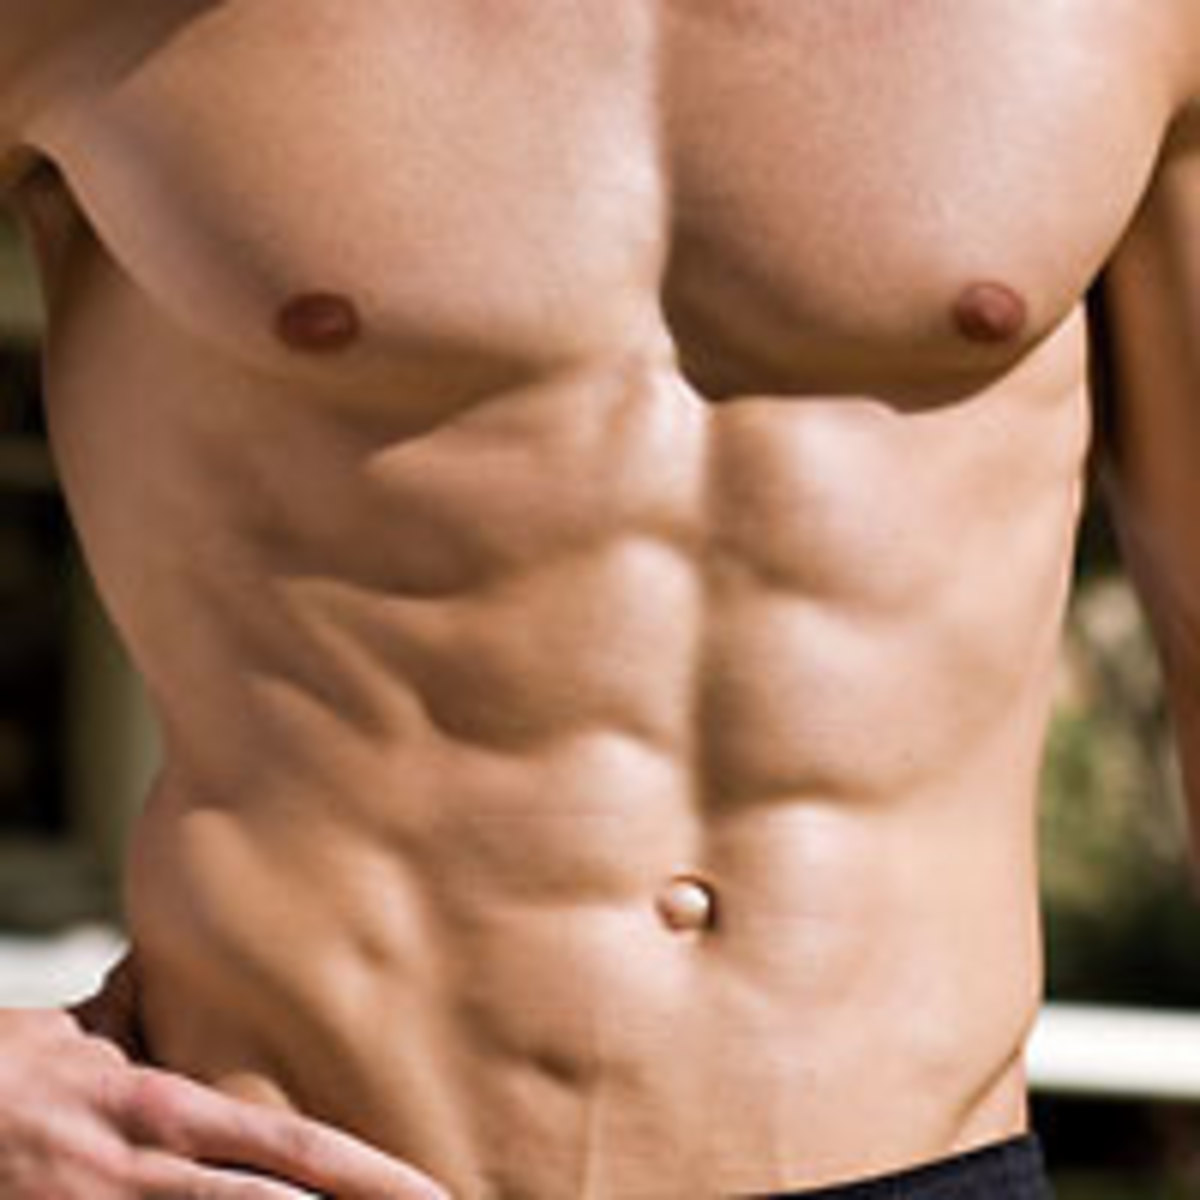 Complete six pack abs